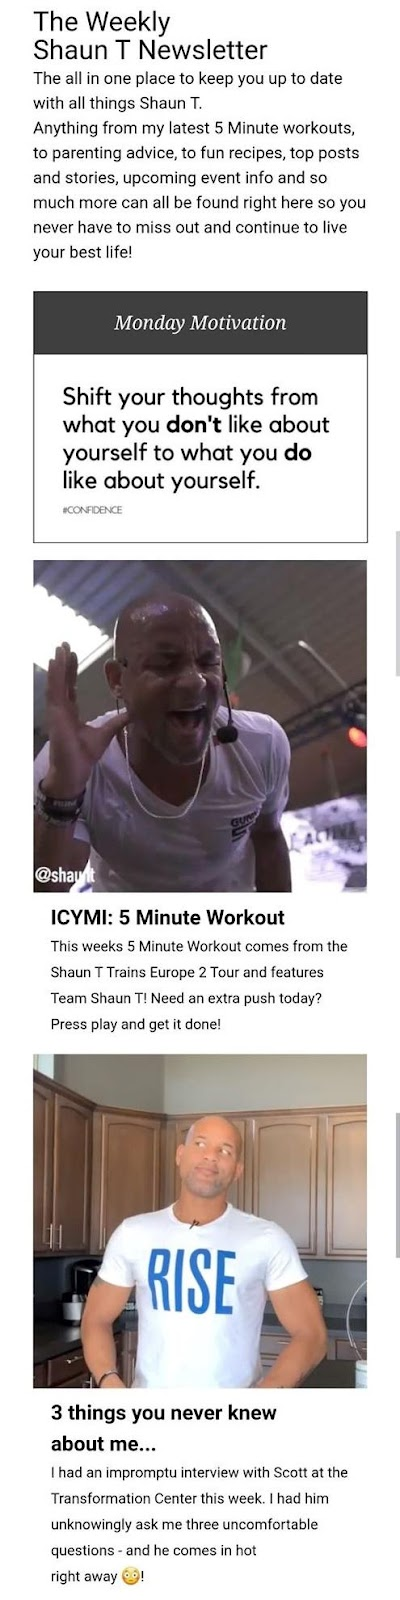 example from celebrity personal trainer, Shaun T.